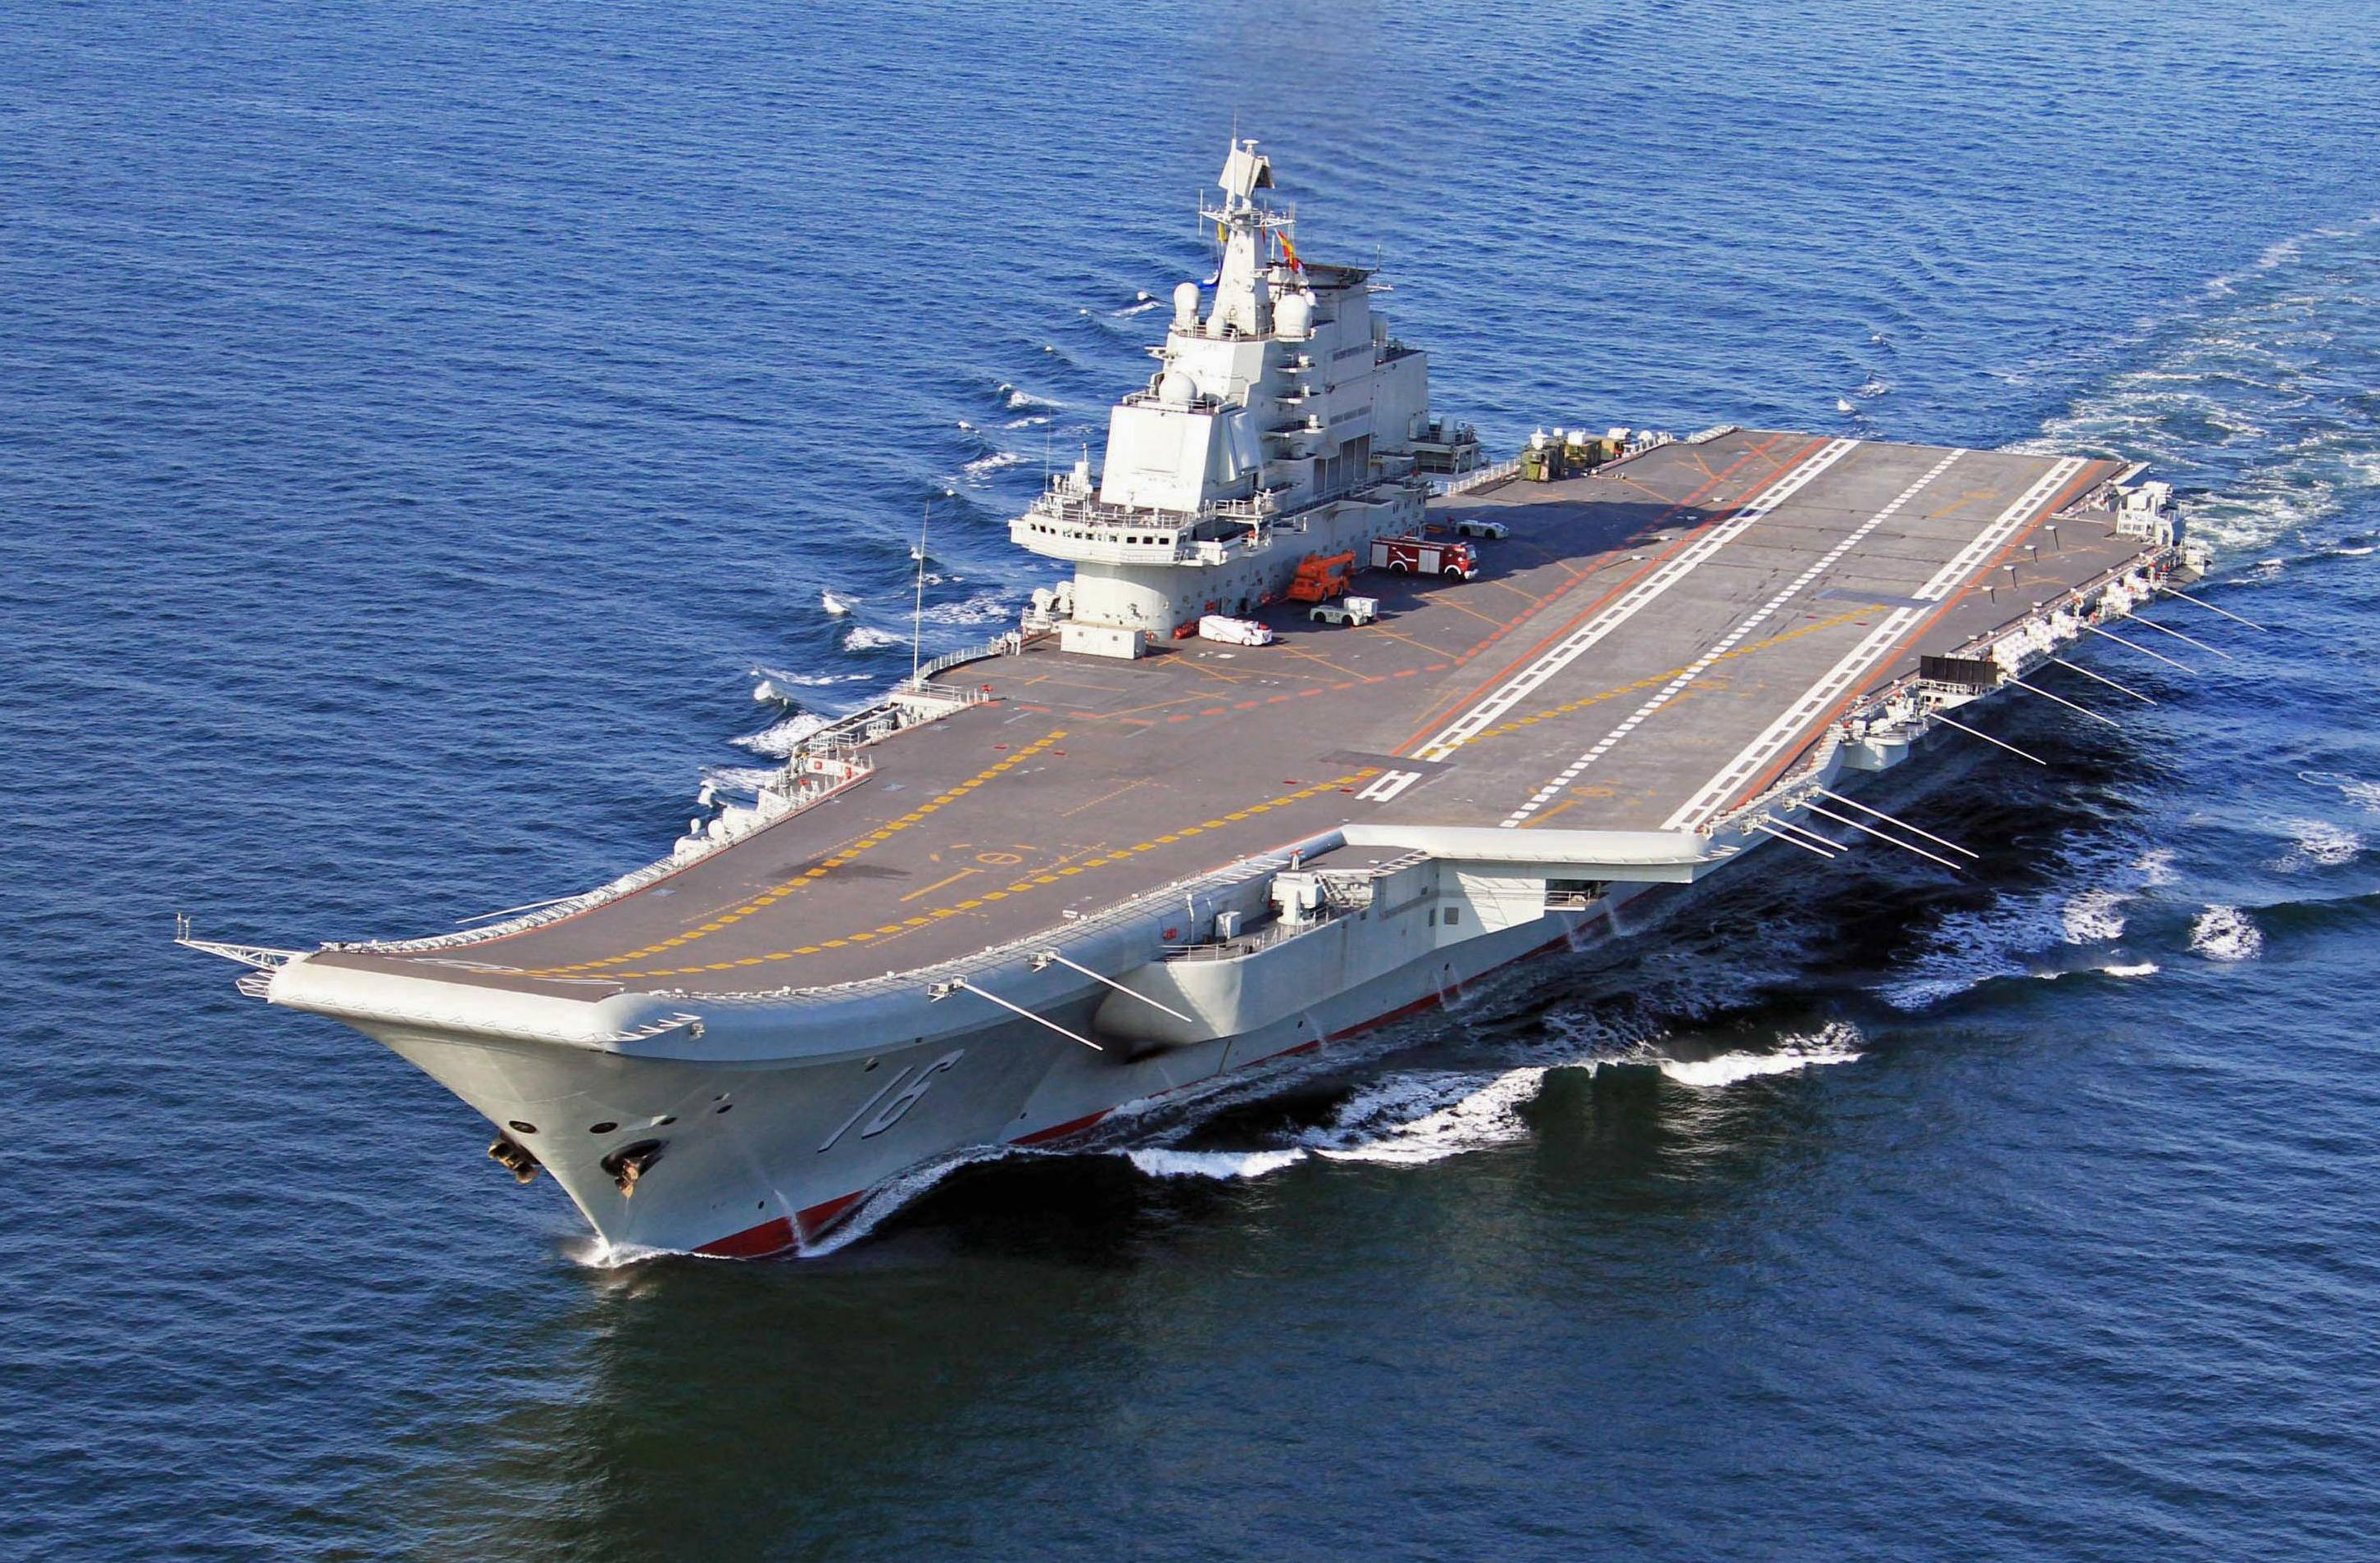 In First U S Defense Chief Visits Sole Chinese Carrier